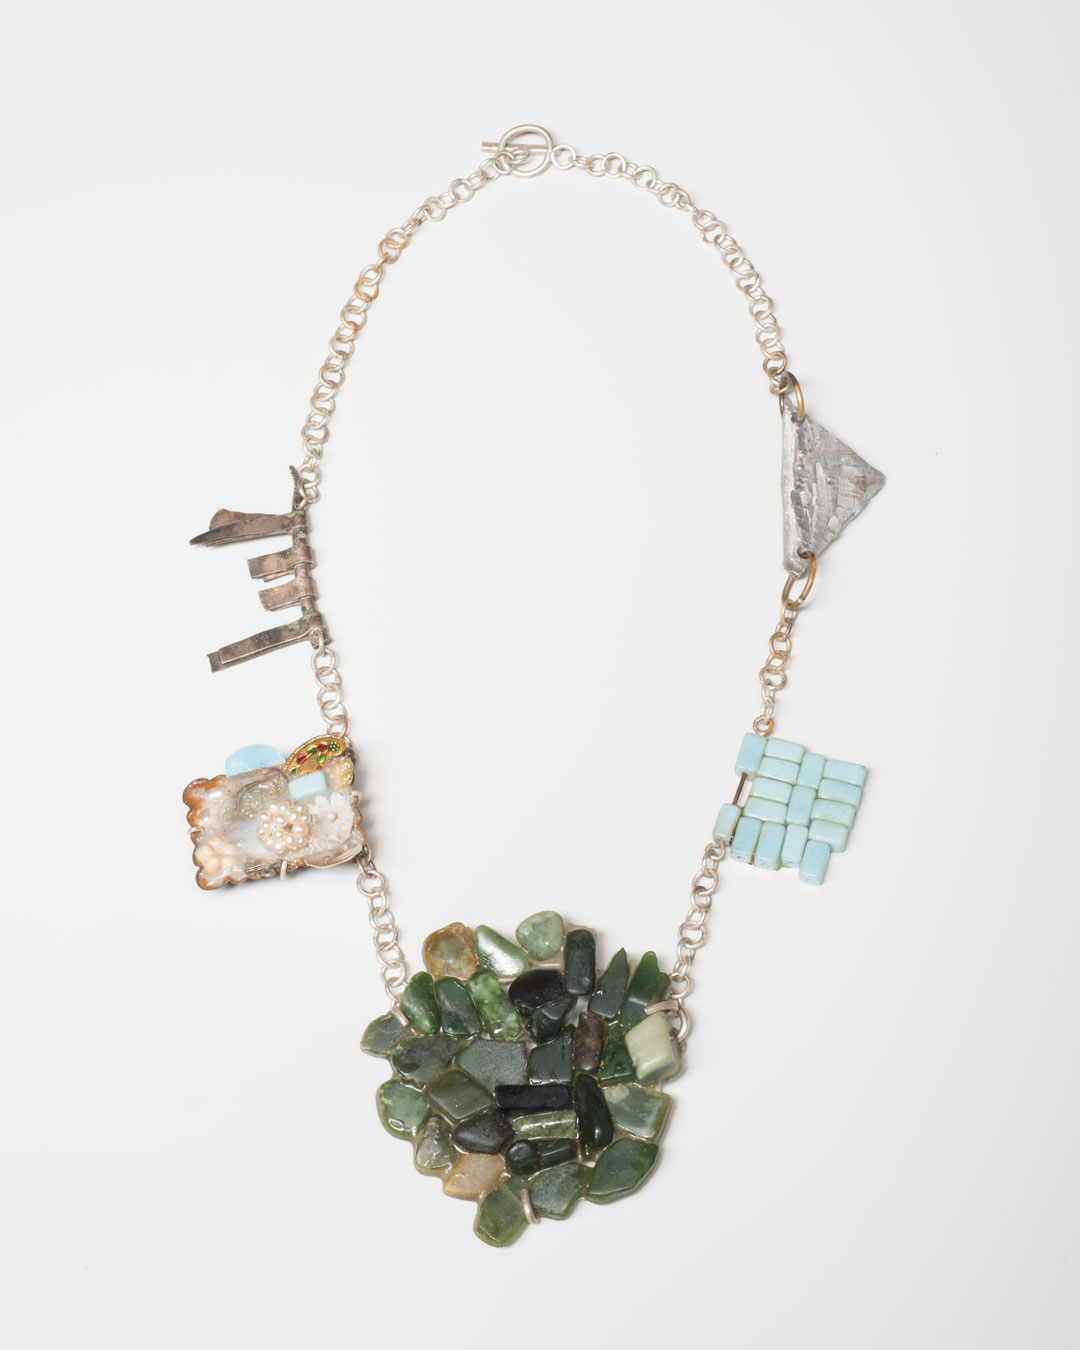 Lisa Walker, untitled, 1998-2020, necklace; silver, plastic, glue, photograph, ceramic, pounamu (New Zealand jade), aluminium, €4360